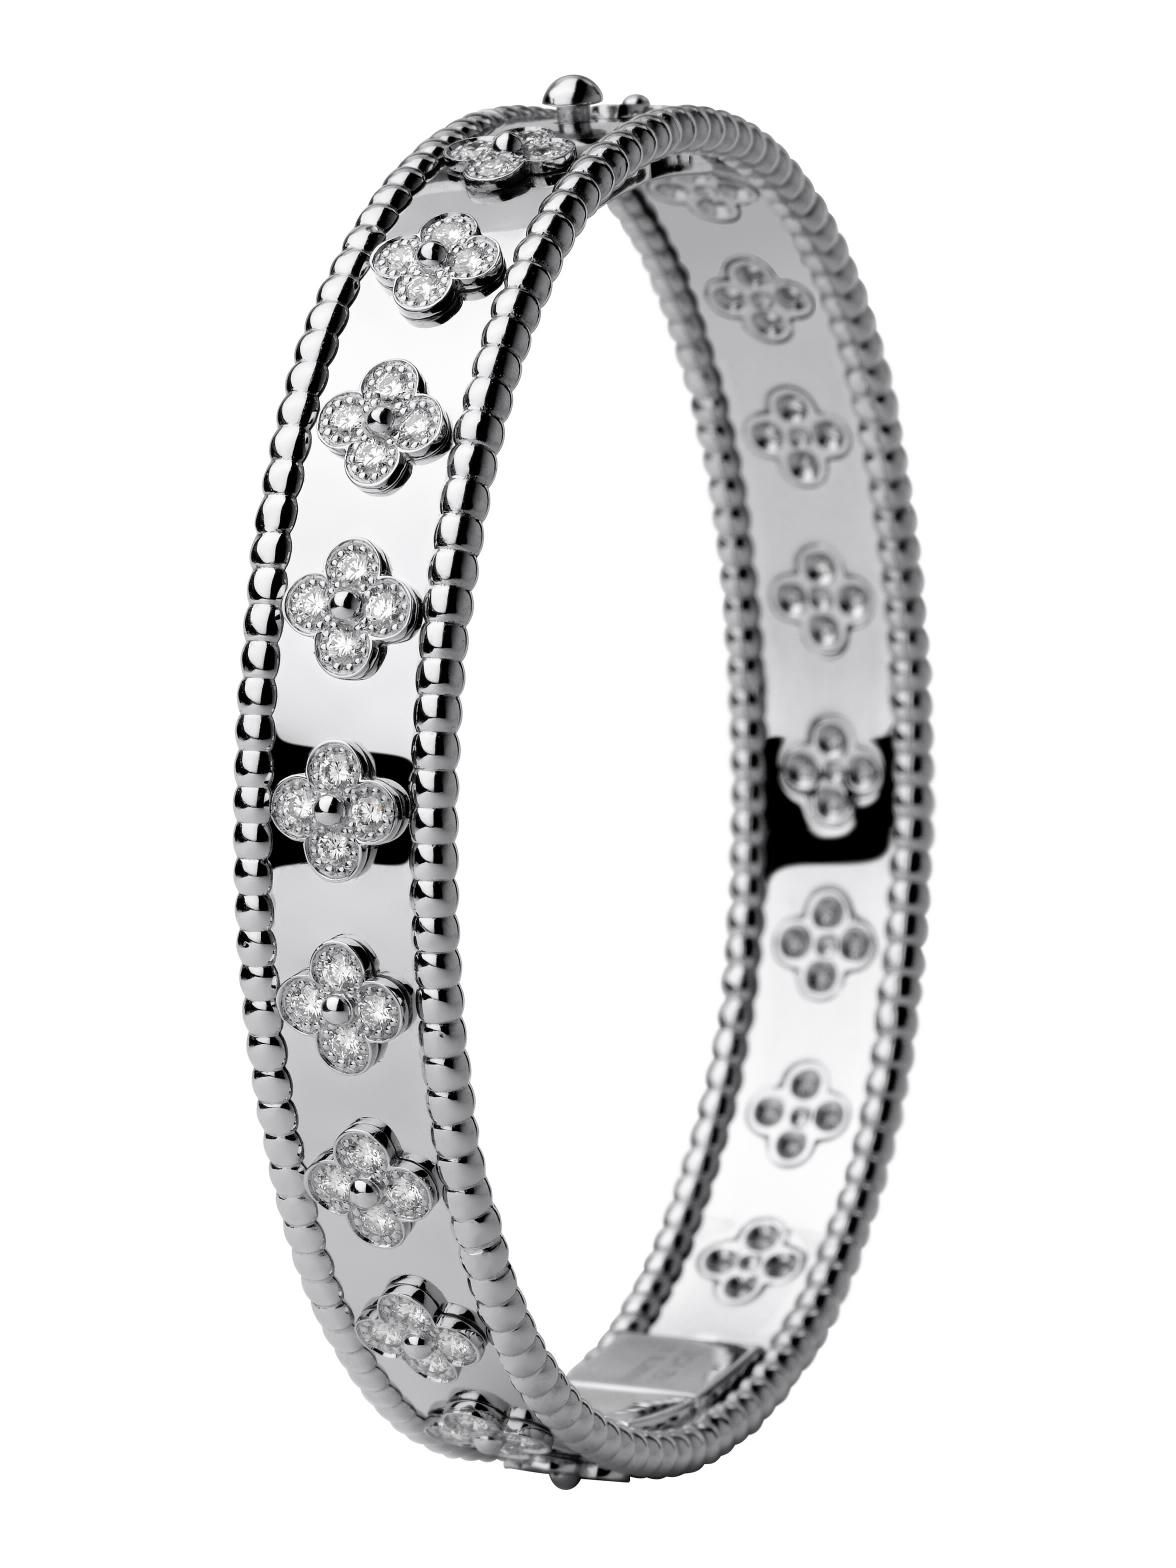 Van Cleef & Arpels 18k Perlee Diamond Bracelet at London Jewelers!